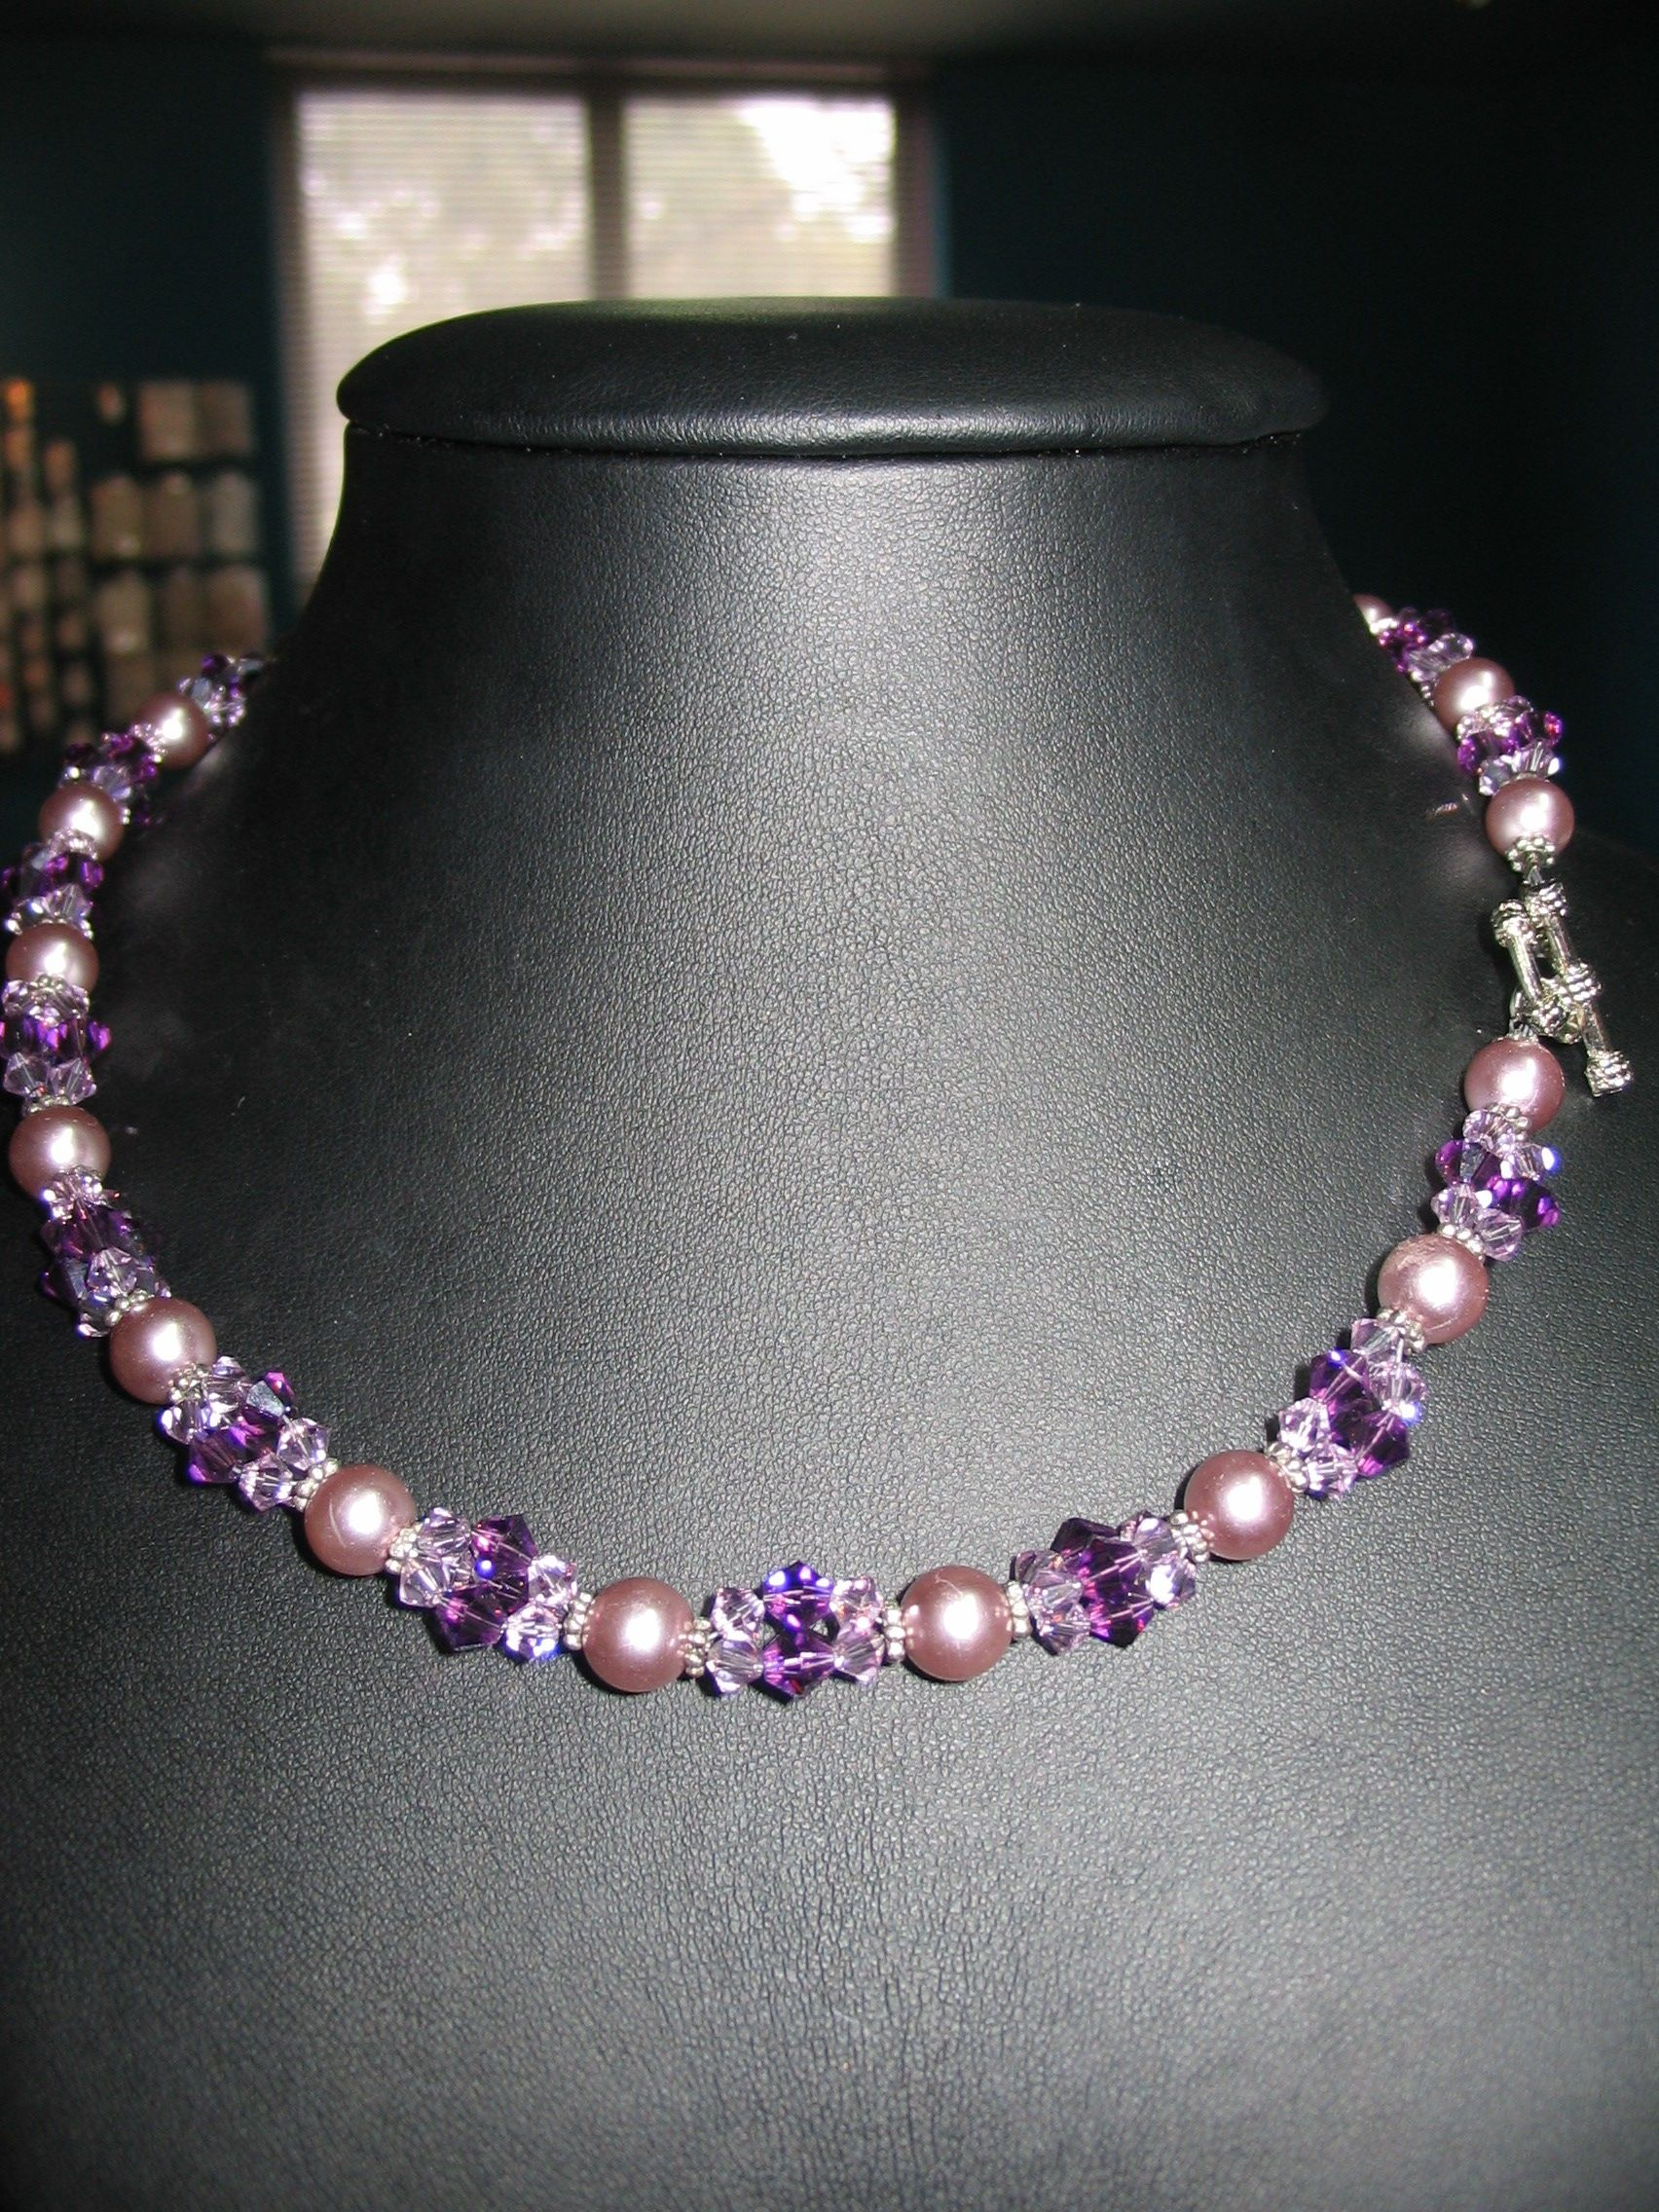 Beaded Necklace Ideas | Beaded Necklace Patterns | Necklaces Designs And  Pictures: Gold .